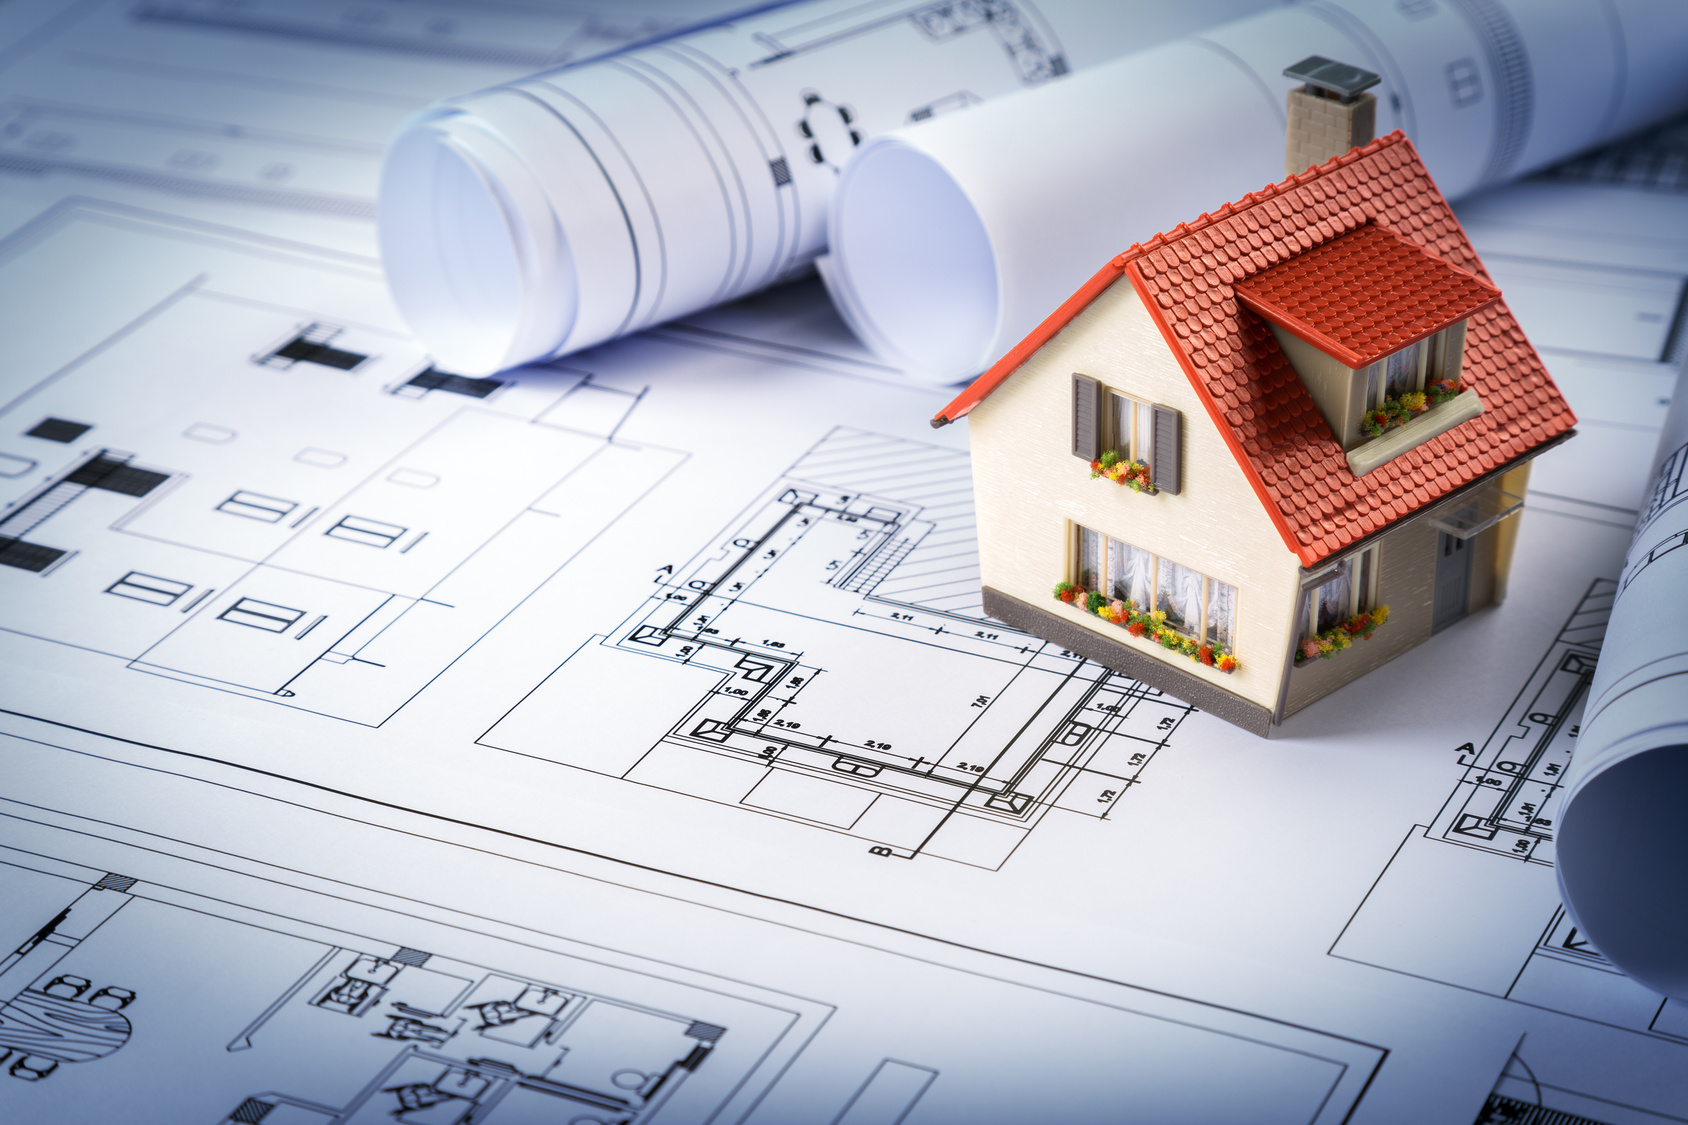 Le tarif pour faire r aliser les plans d 39 une maison les for Tarif maison construction